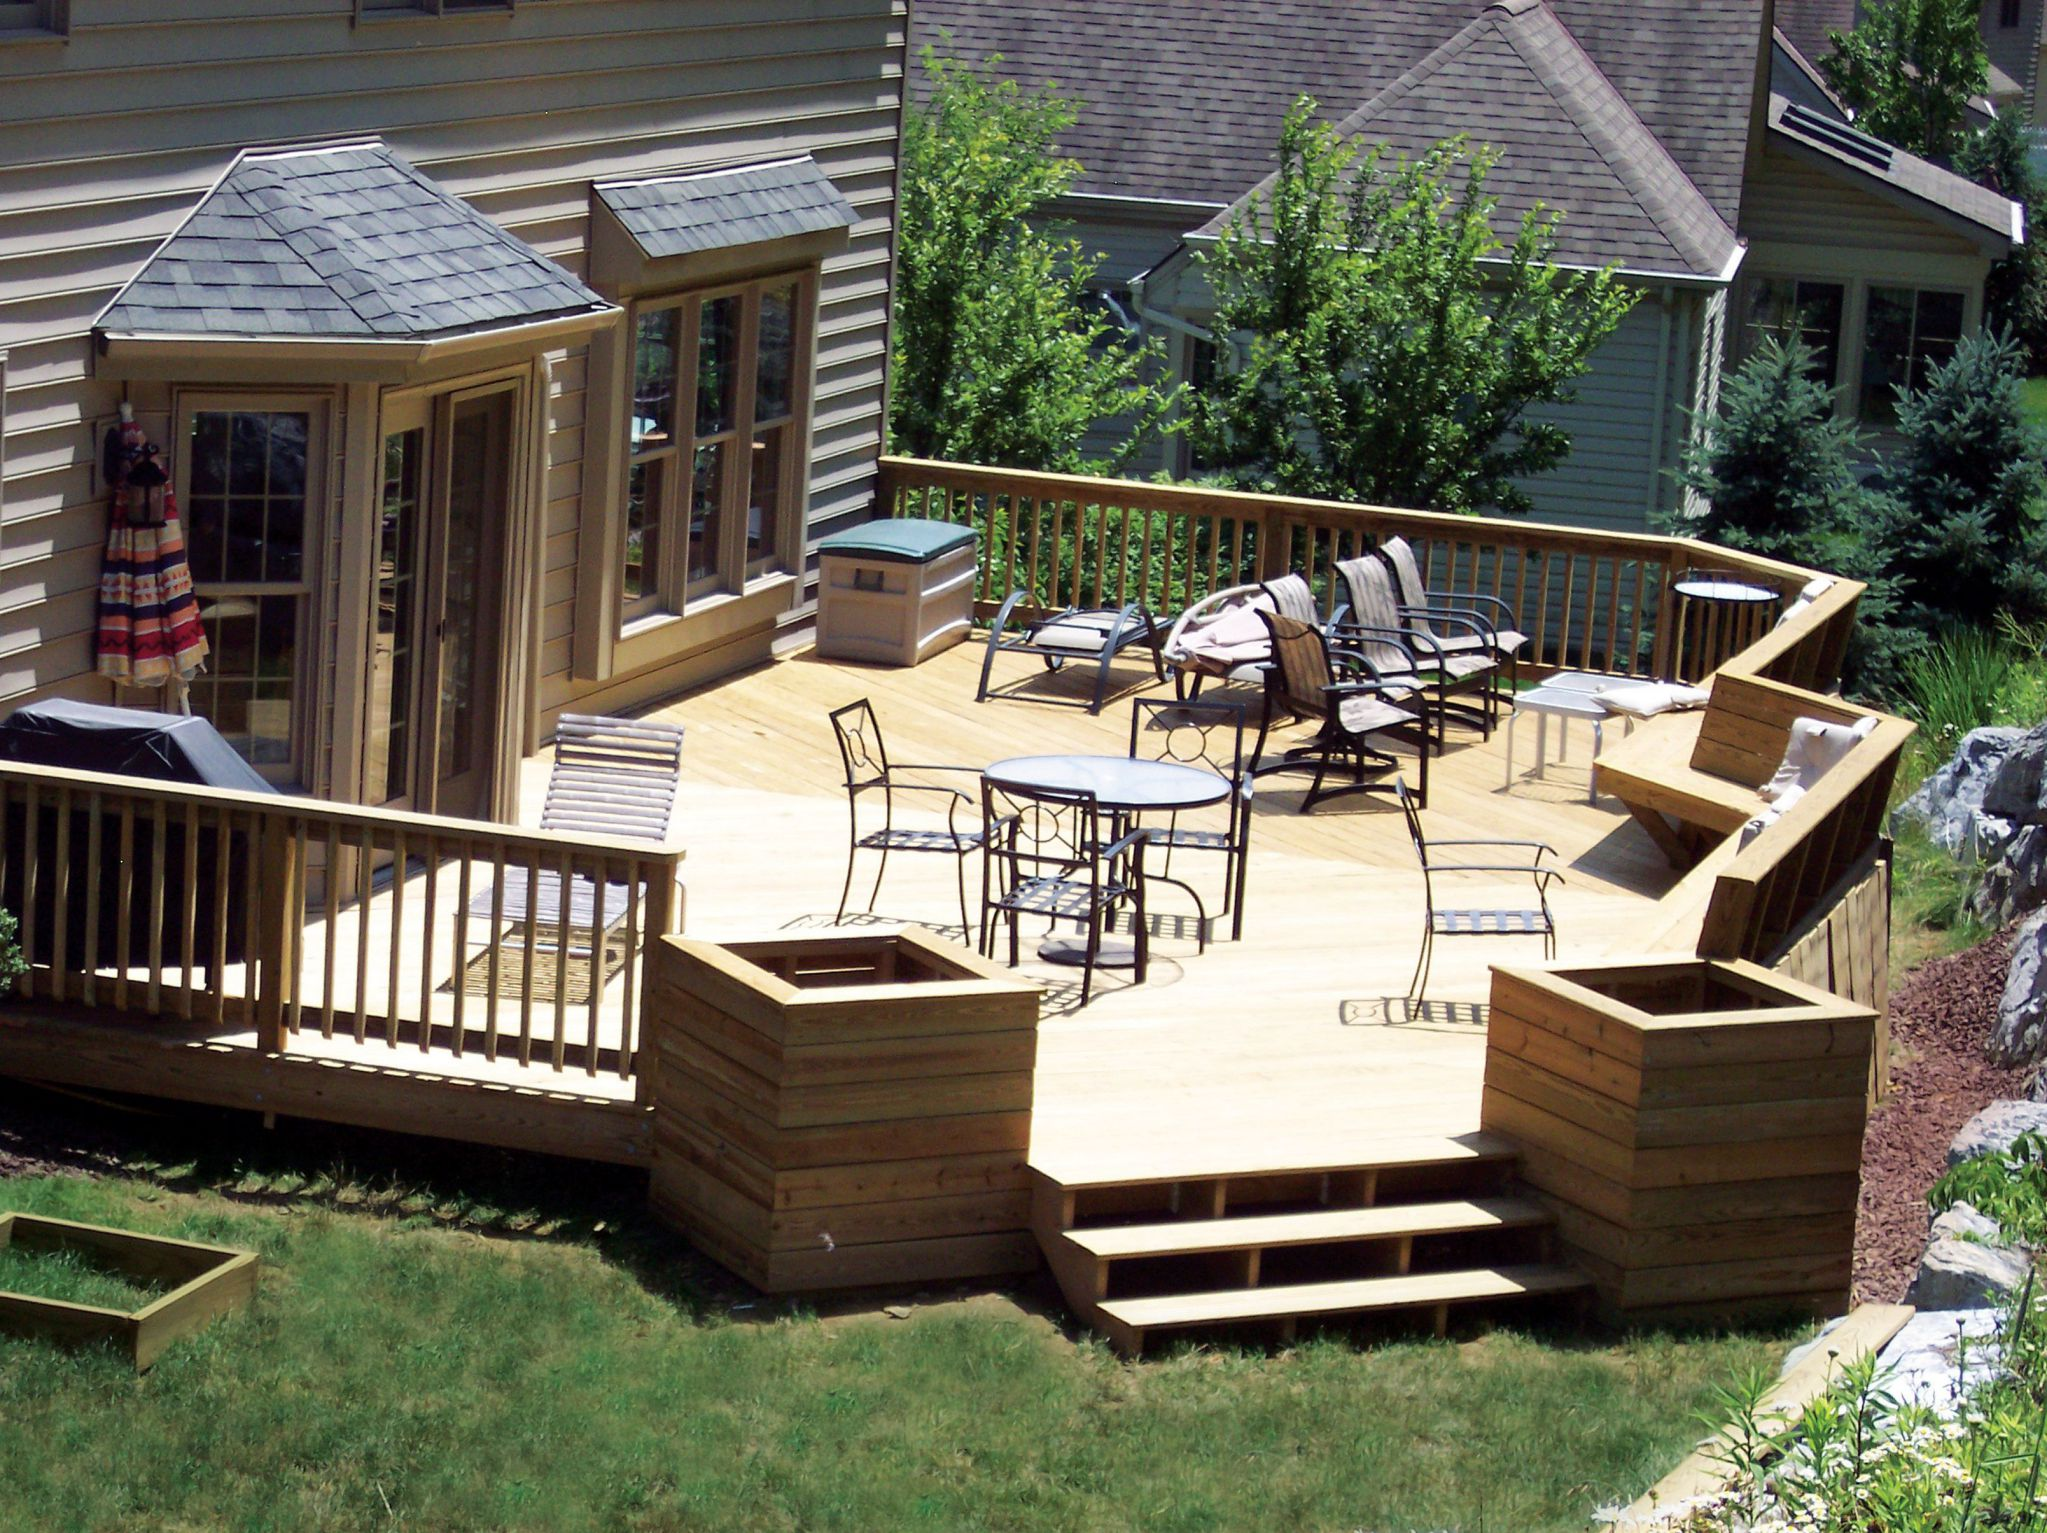 Large Backyard Deck Ideas With Set Of Tables and Chairs